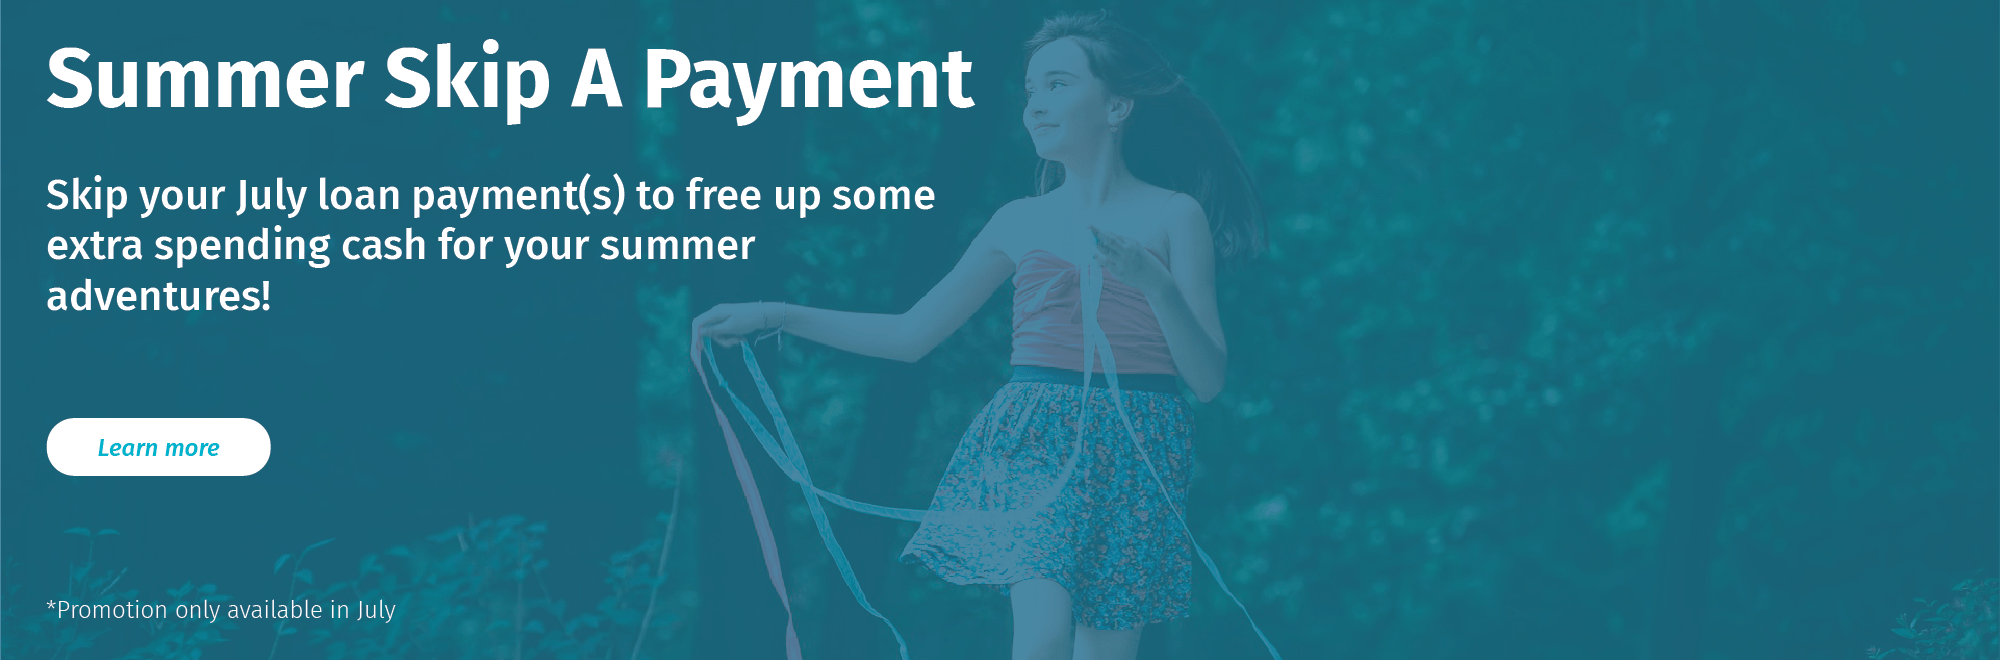 Sumer Skip A Payment. Skip your July loan payment(s) to free up some extra spending cash for your summer adventures!